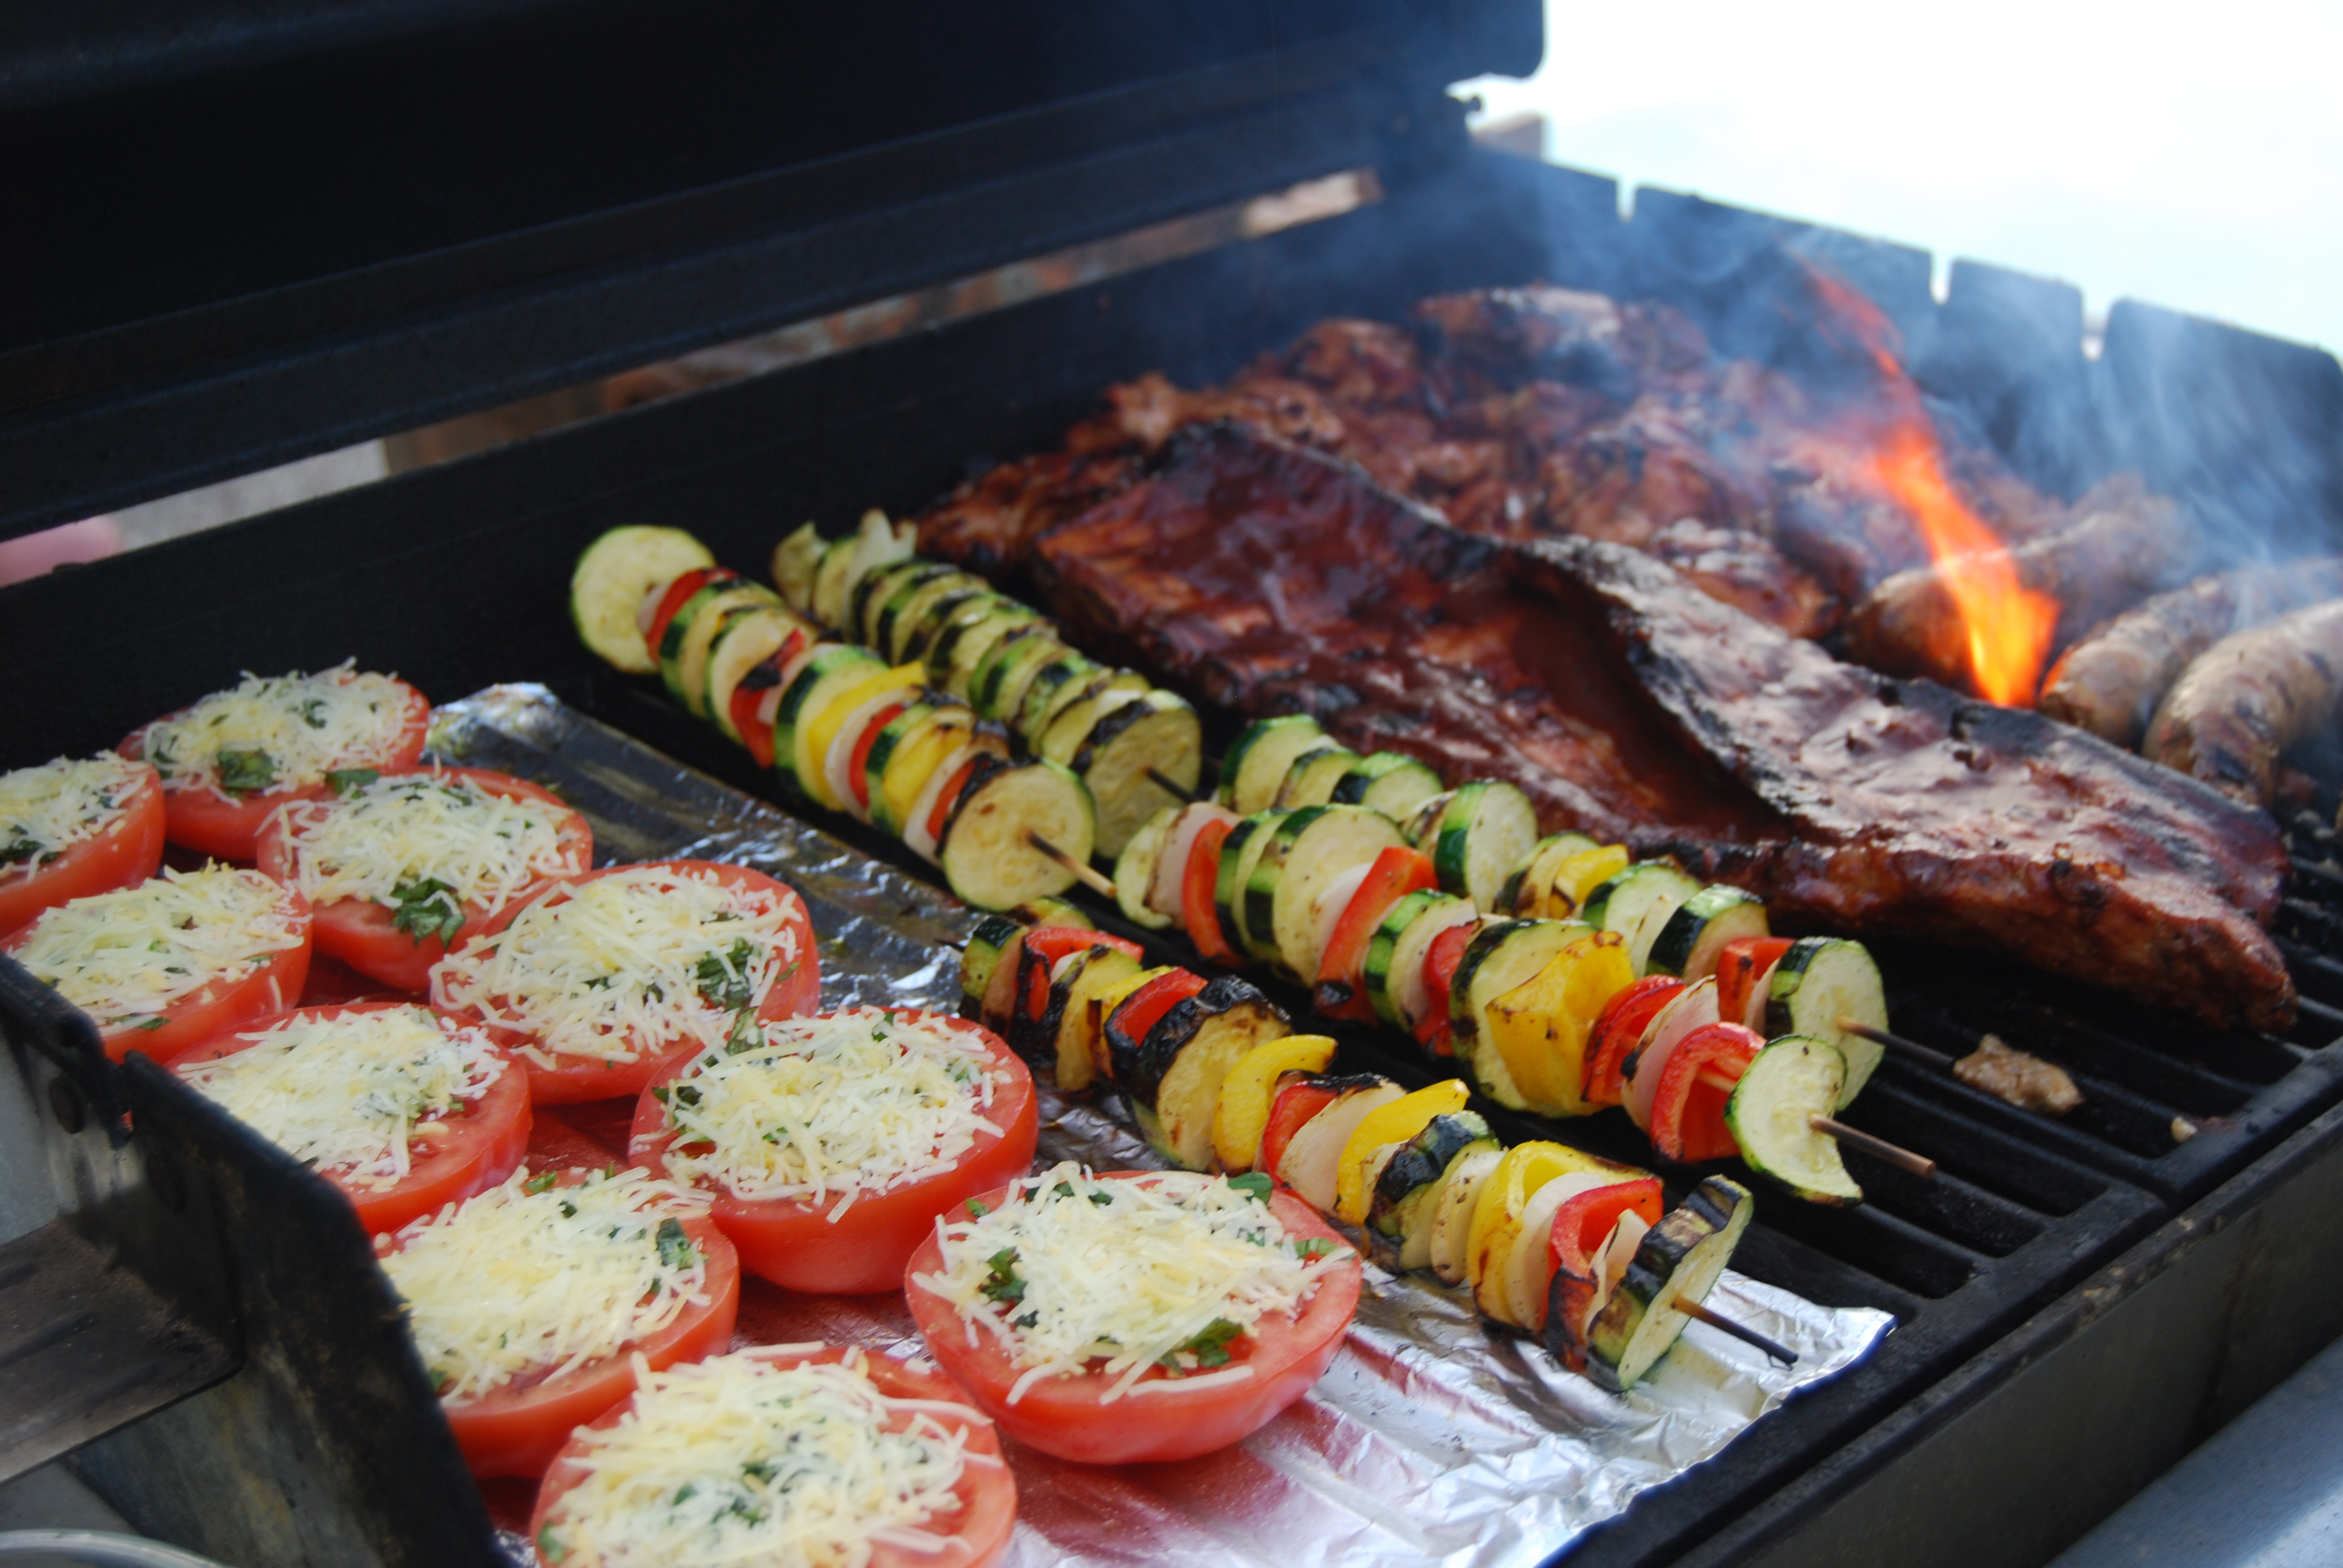 my classic grilled veggies